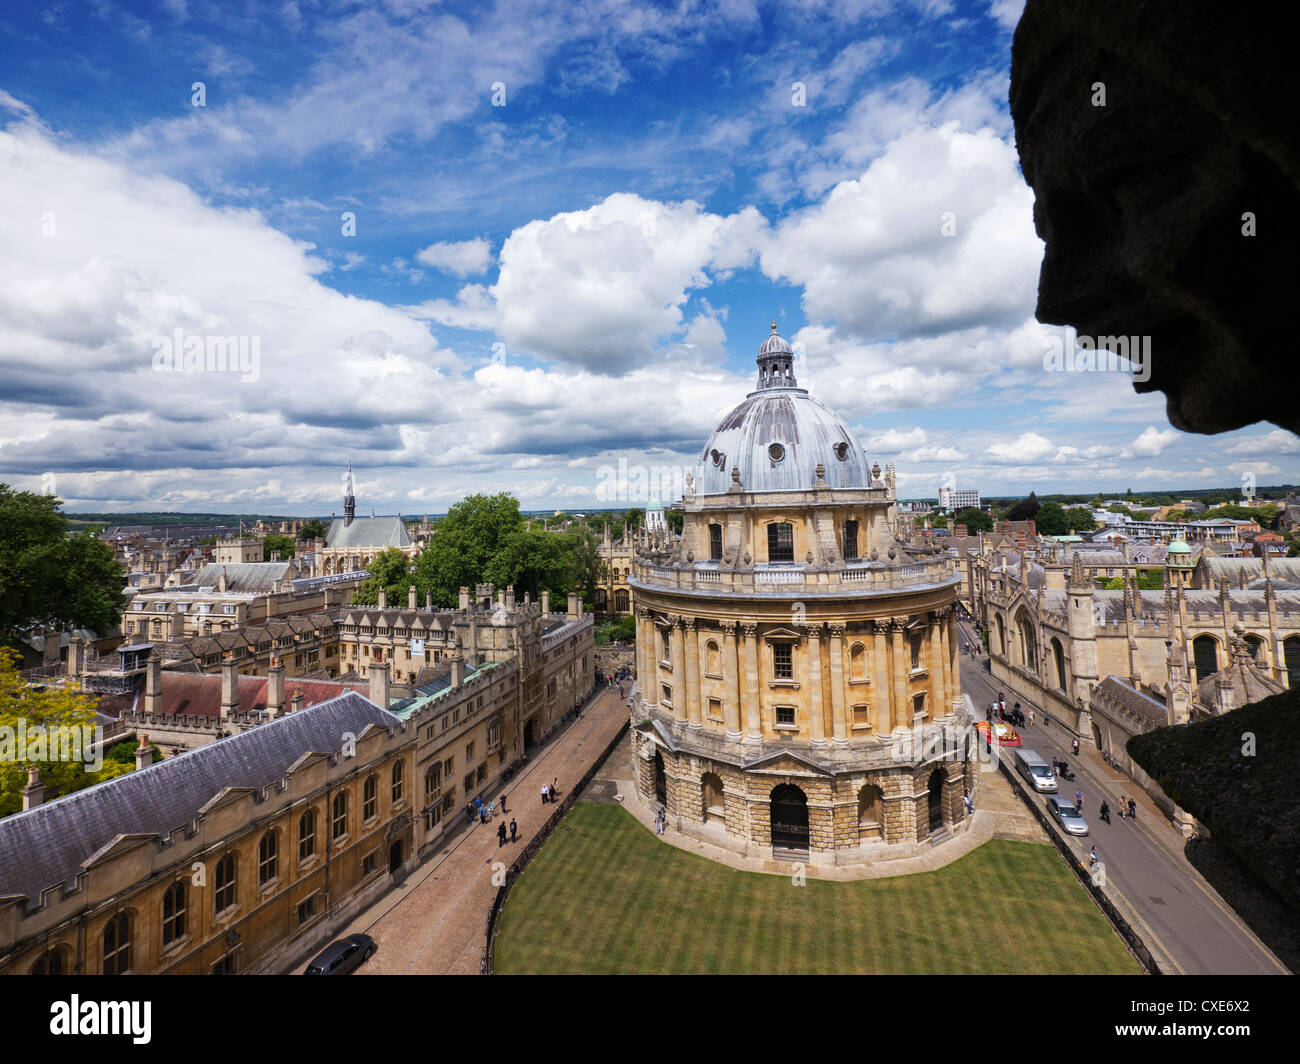 Elevated view of Radcliffe Camera, Oxford, Oxfordshire, England, UK - Stock Image